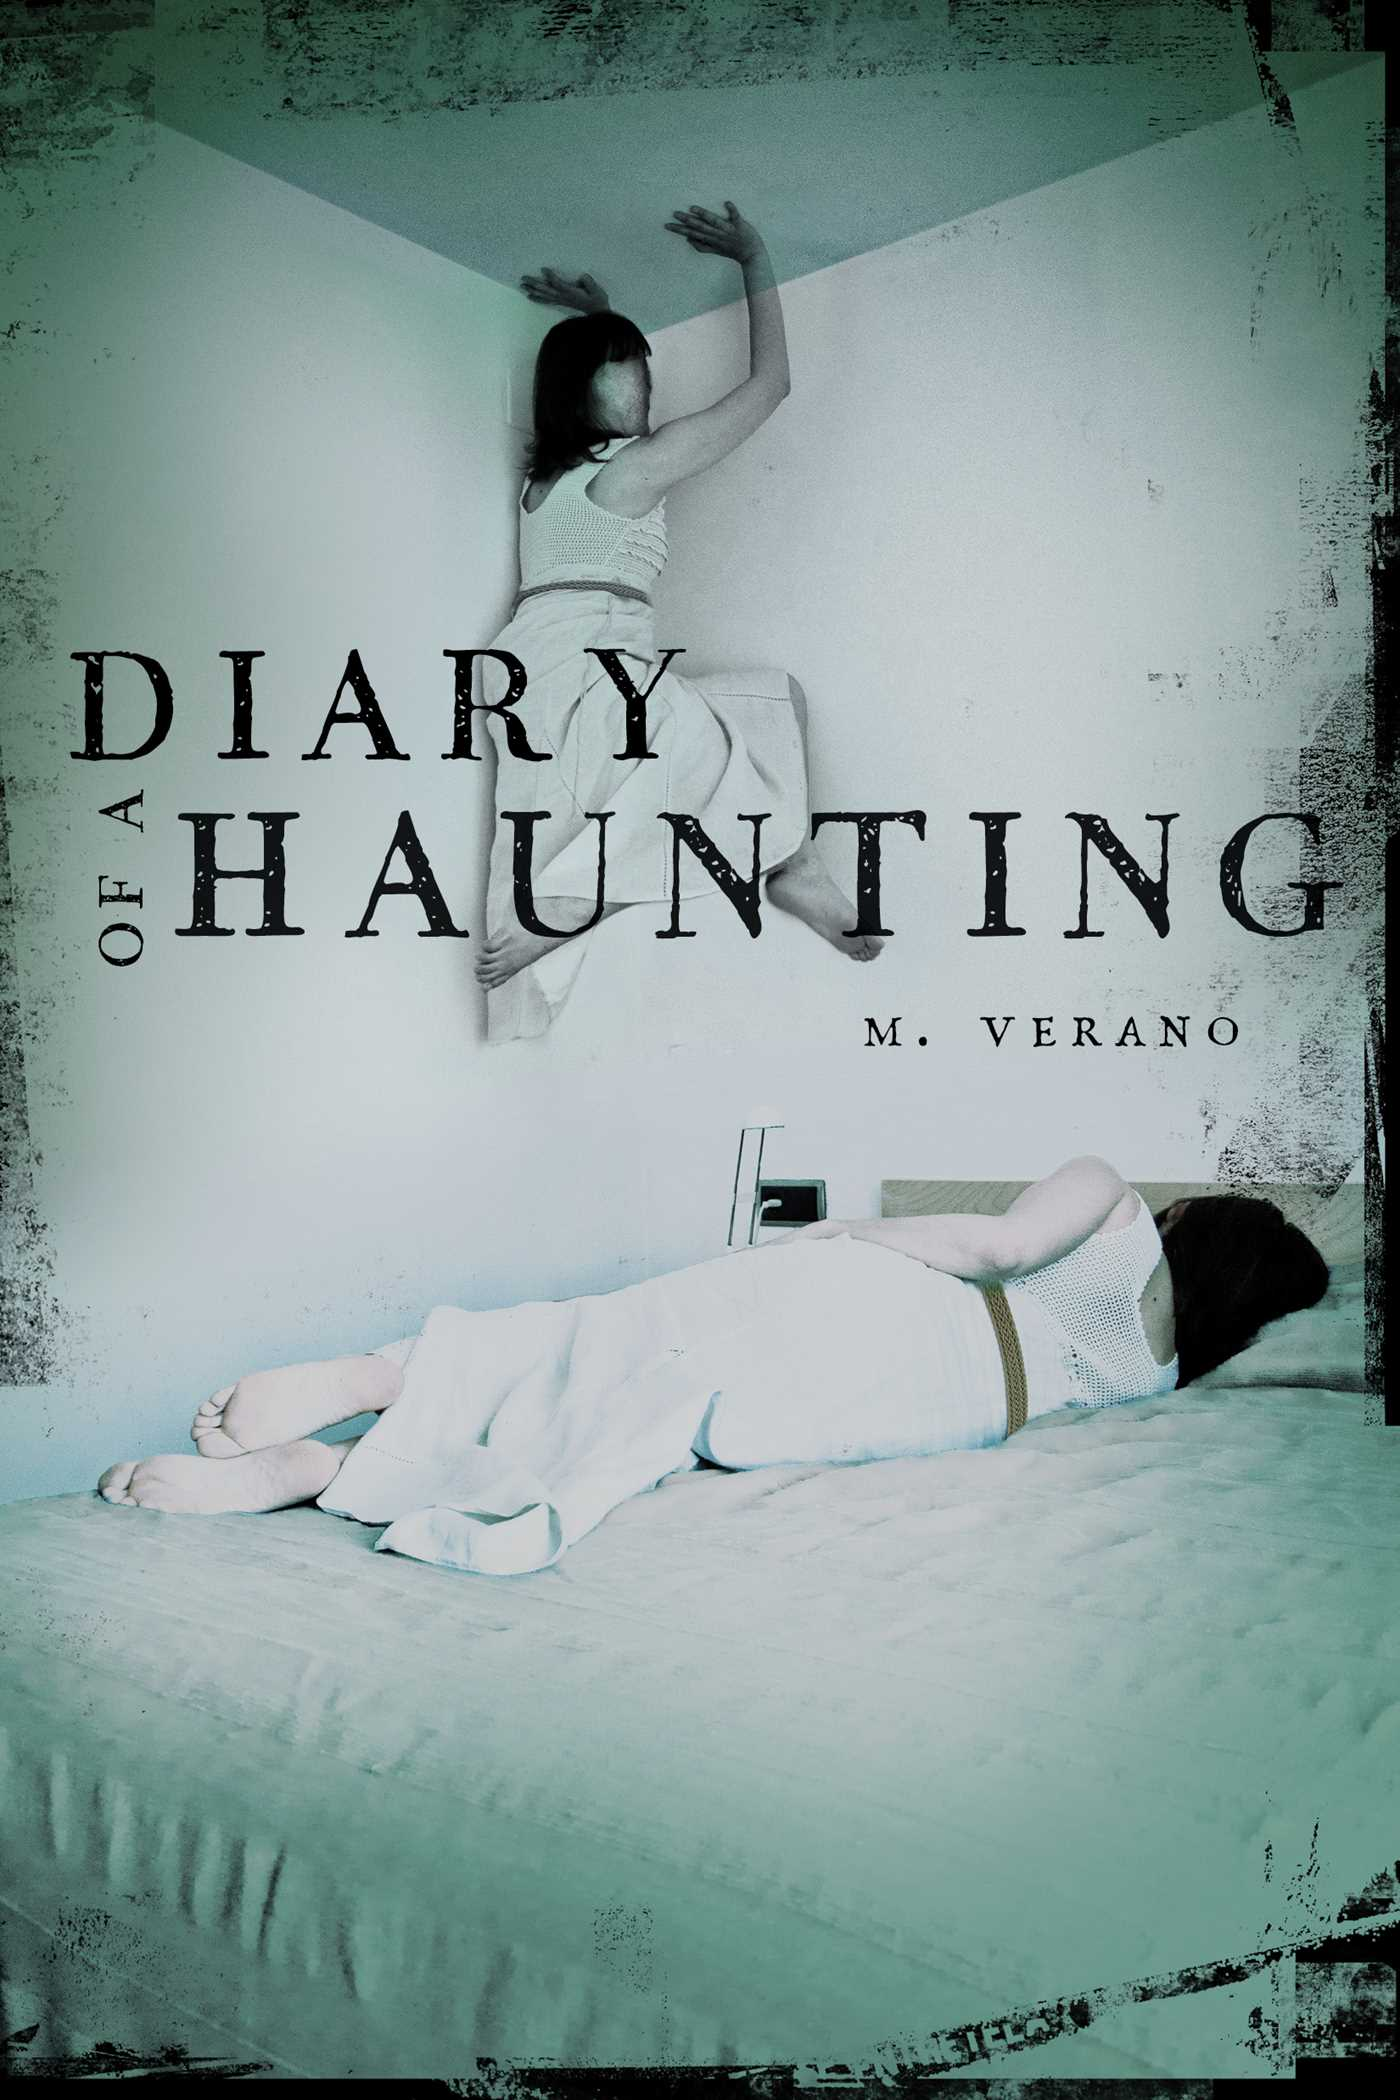 Diary of a haunting 9781481430692 hr